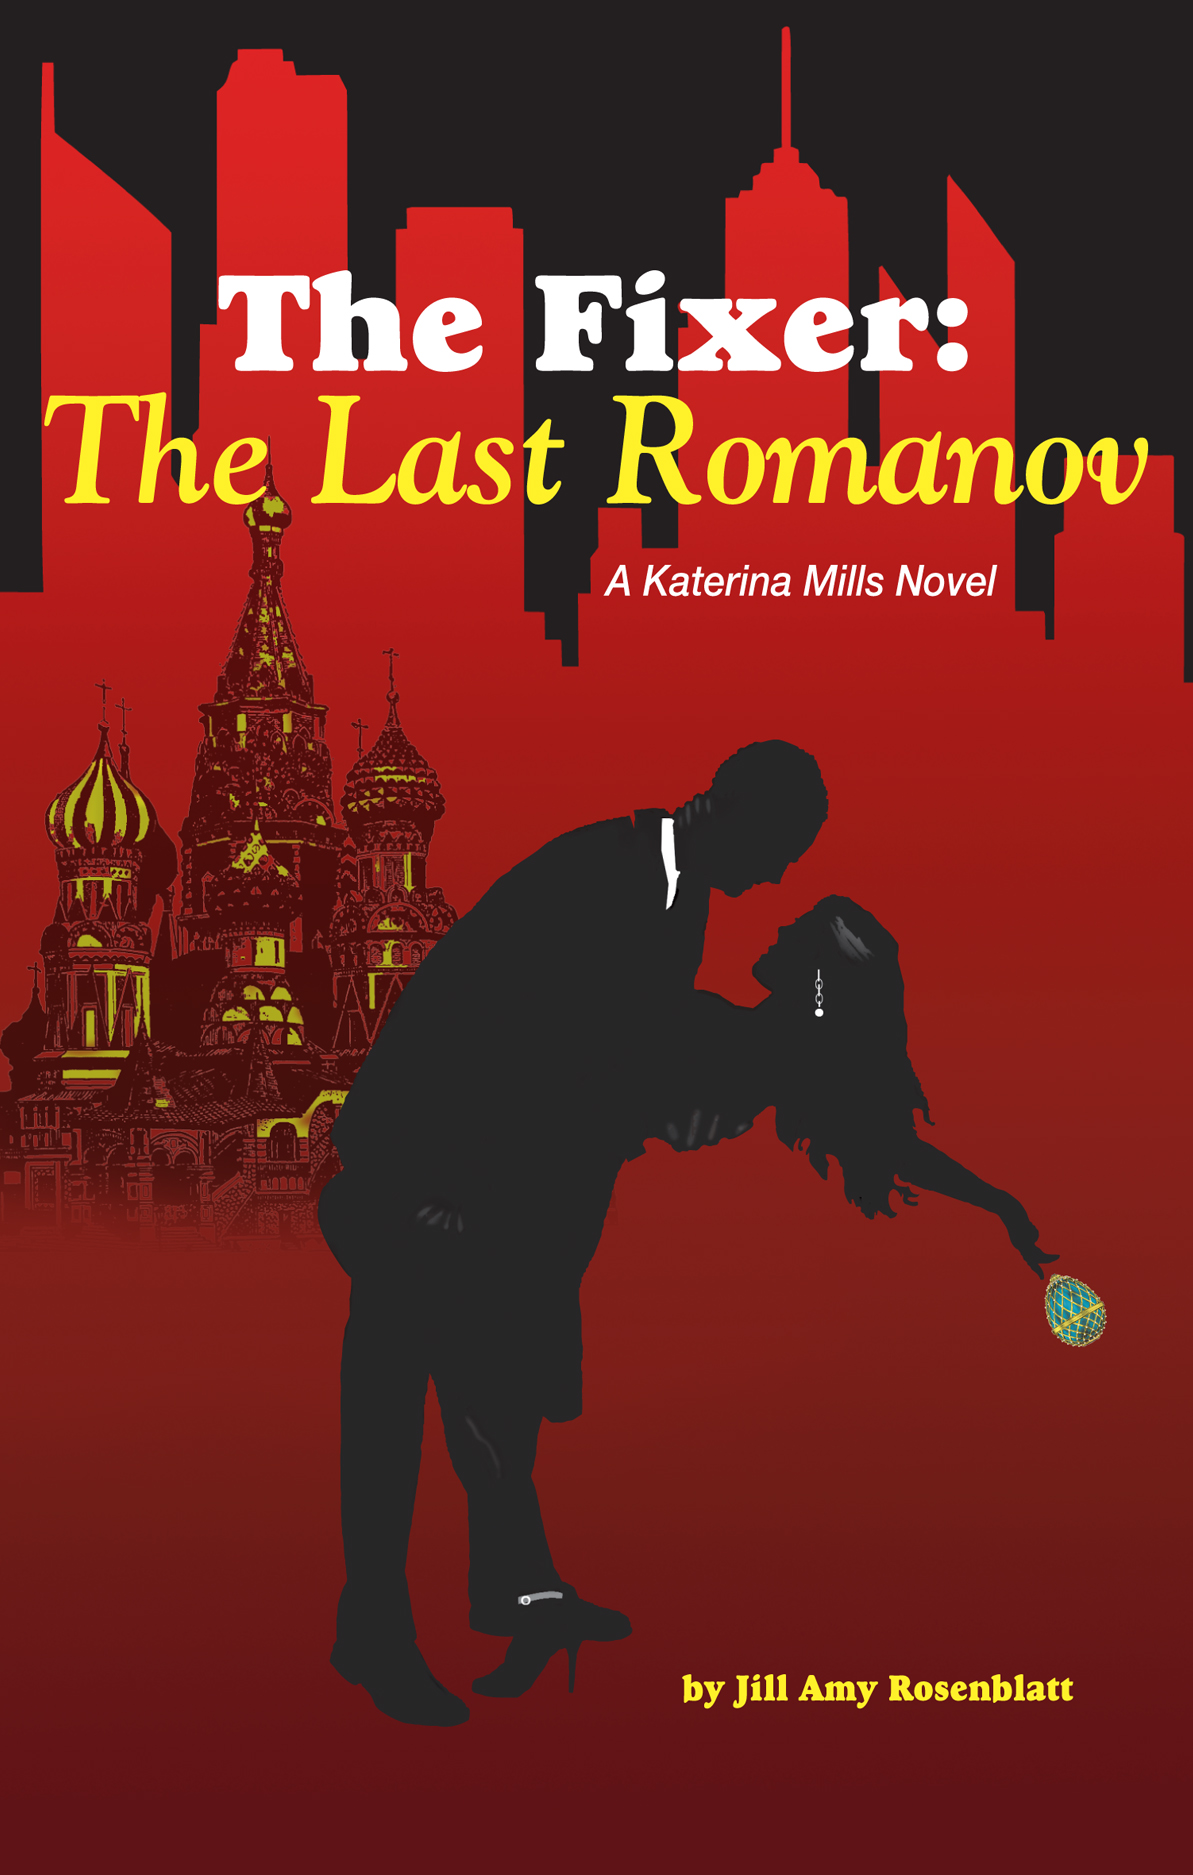 The Last Romanov by Jill Amy Rosenblatt